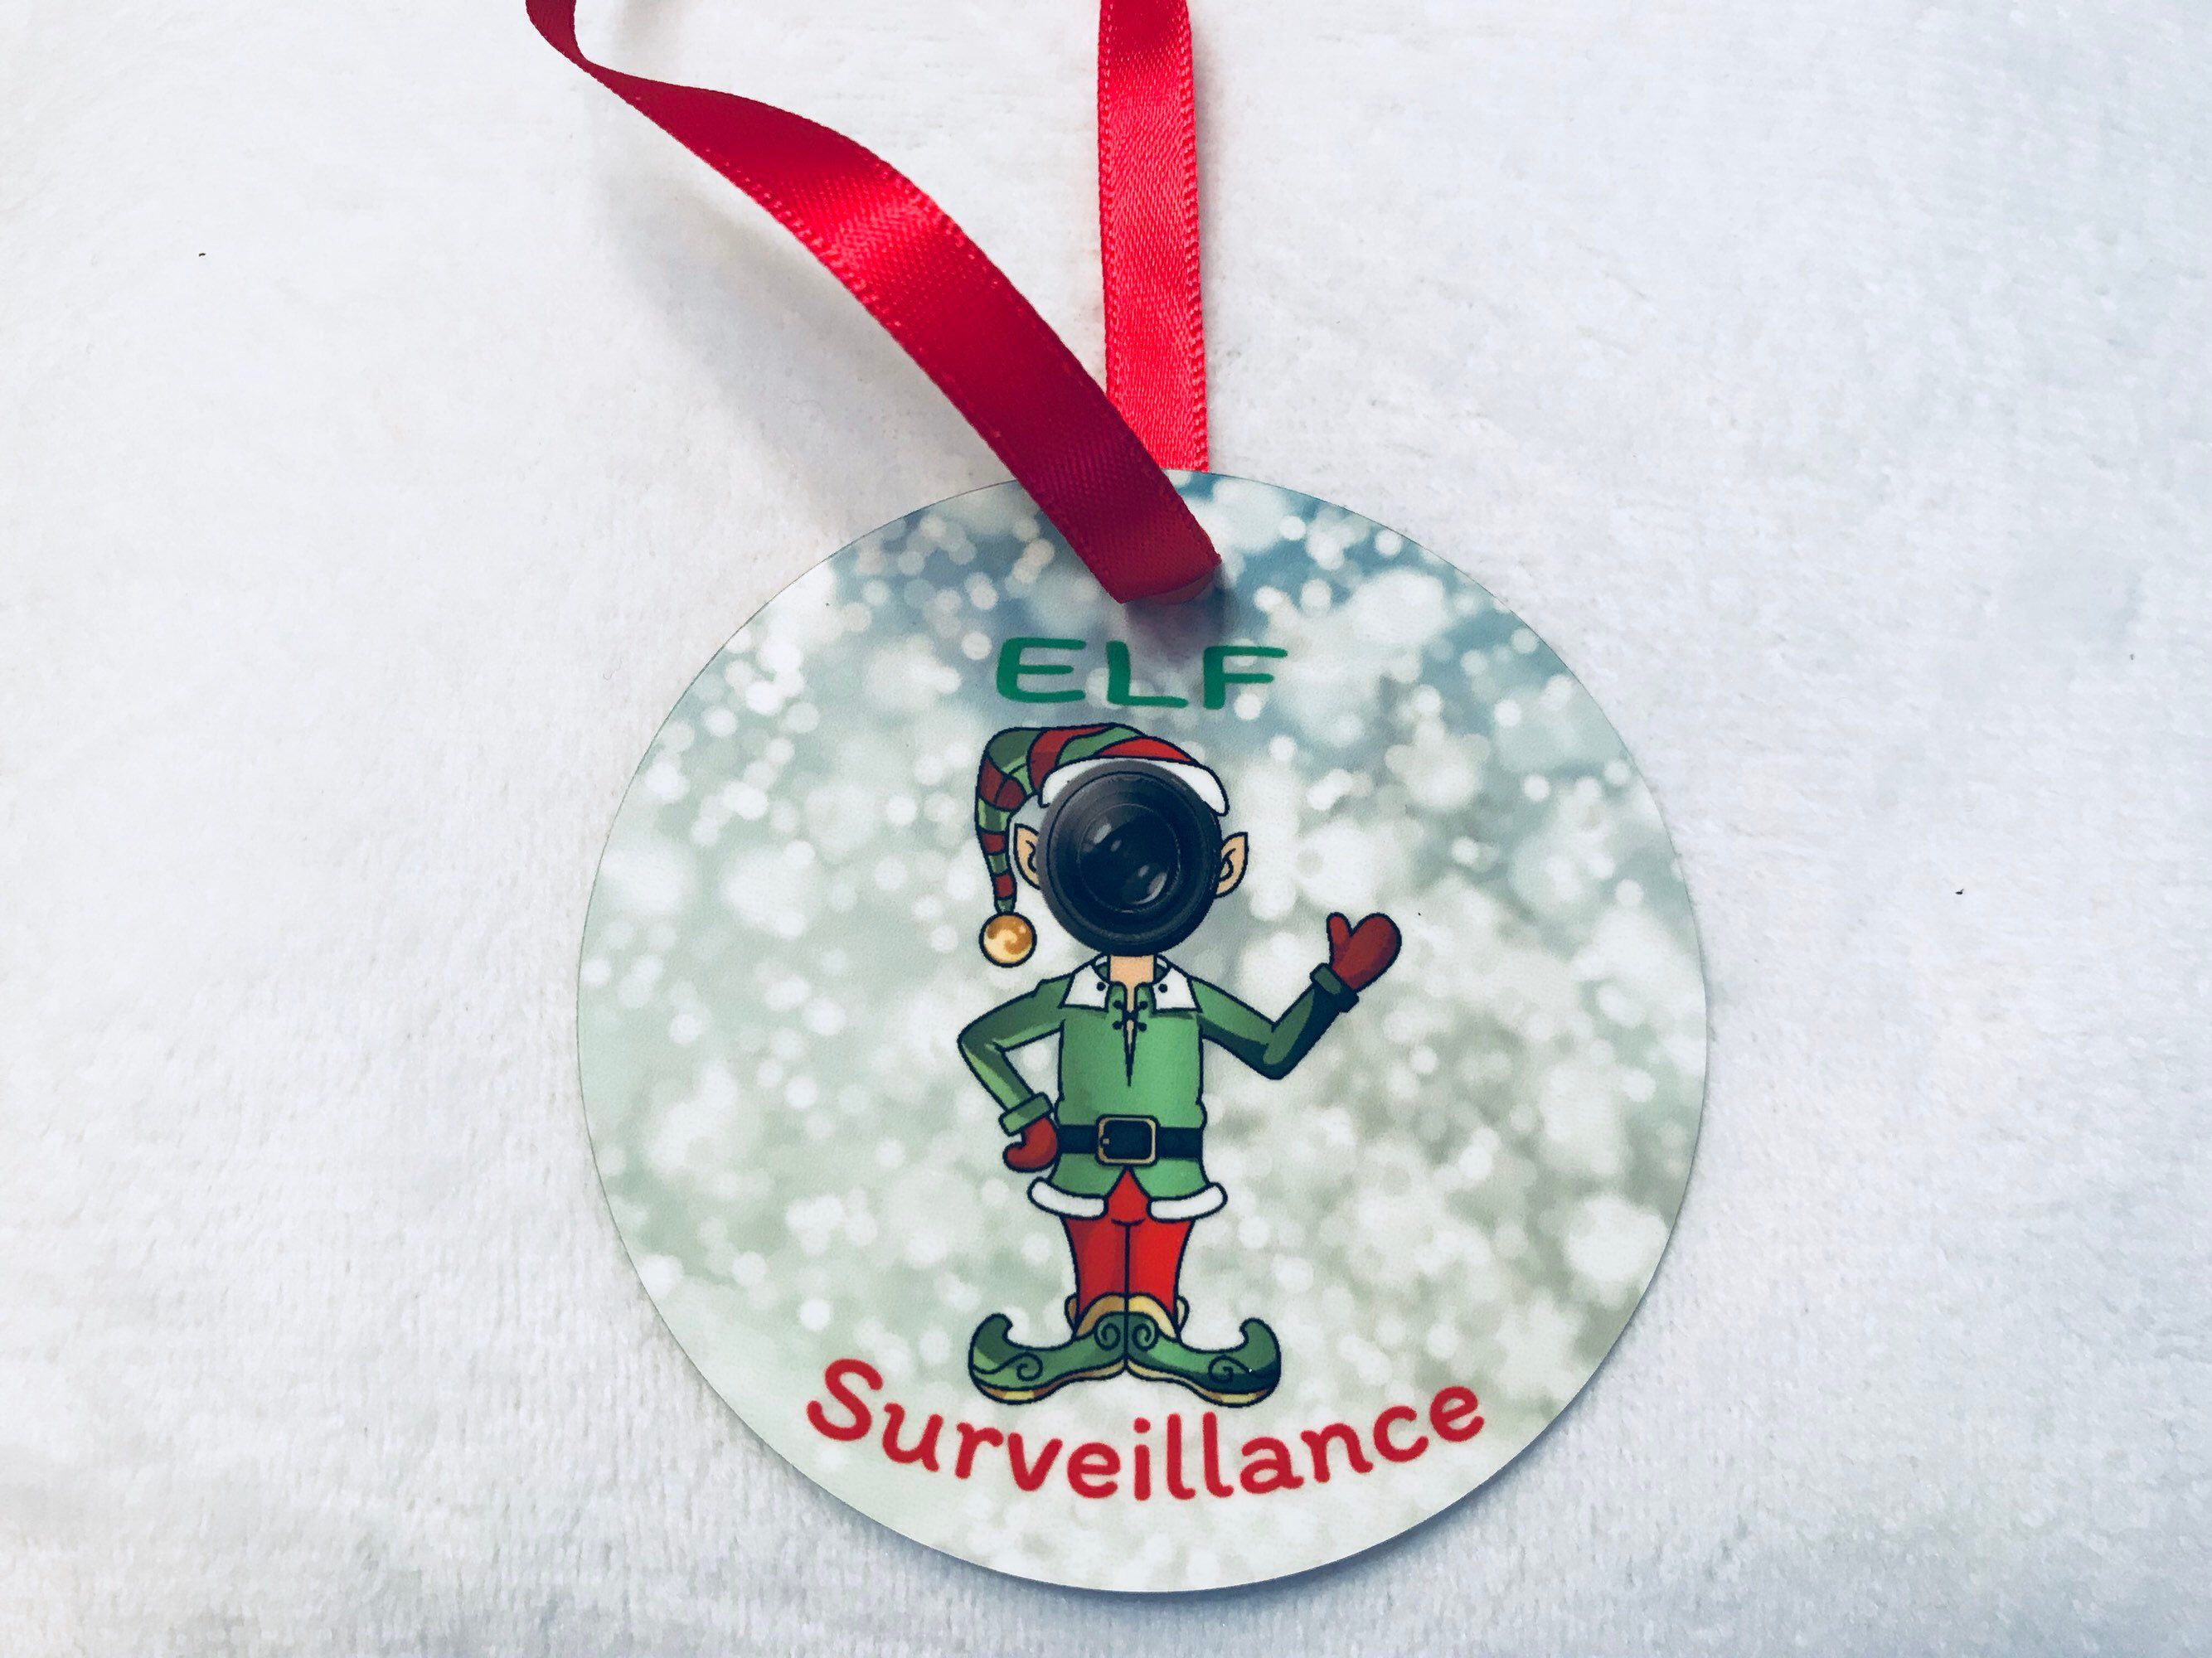 Personalized holiday ornaments inexpensive christmas gifts pinterest